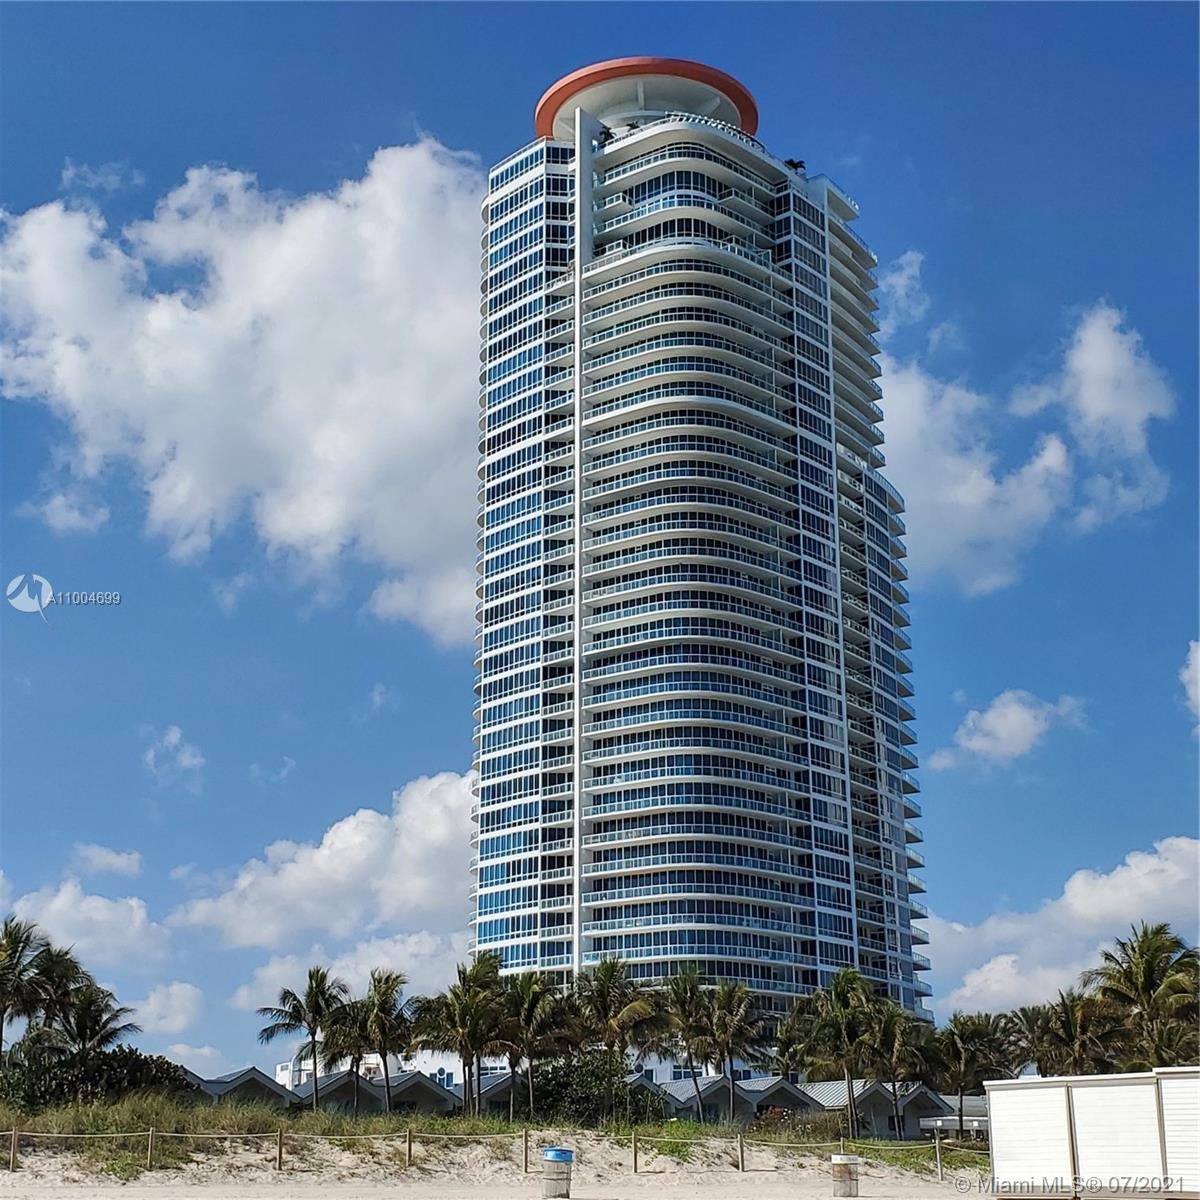 Continuum South #3504/3505 - 100 S Pointe Dr #3504/3505, Miami Beach, FL 33139